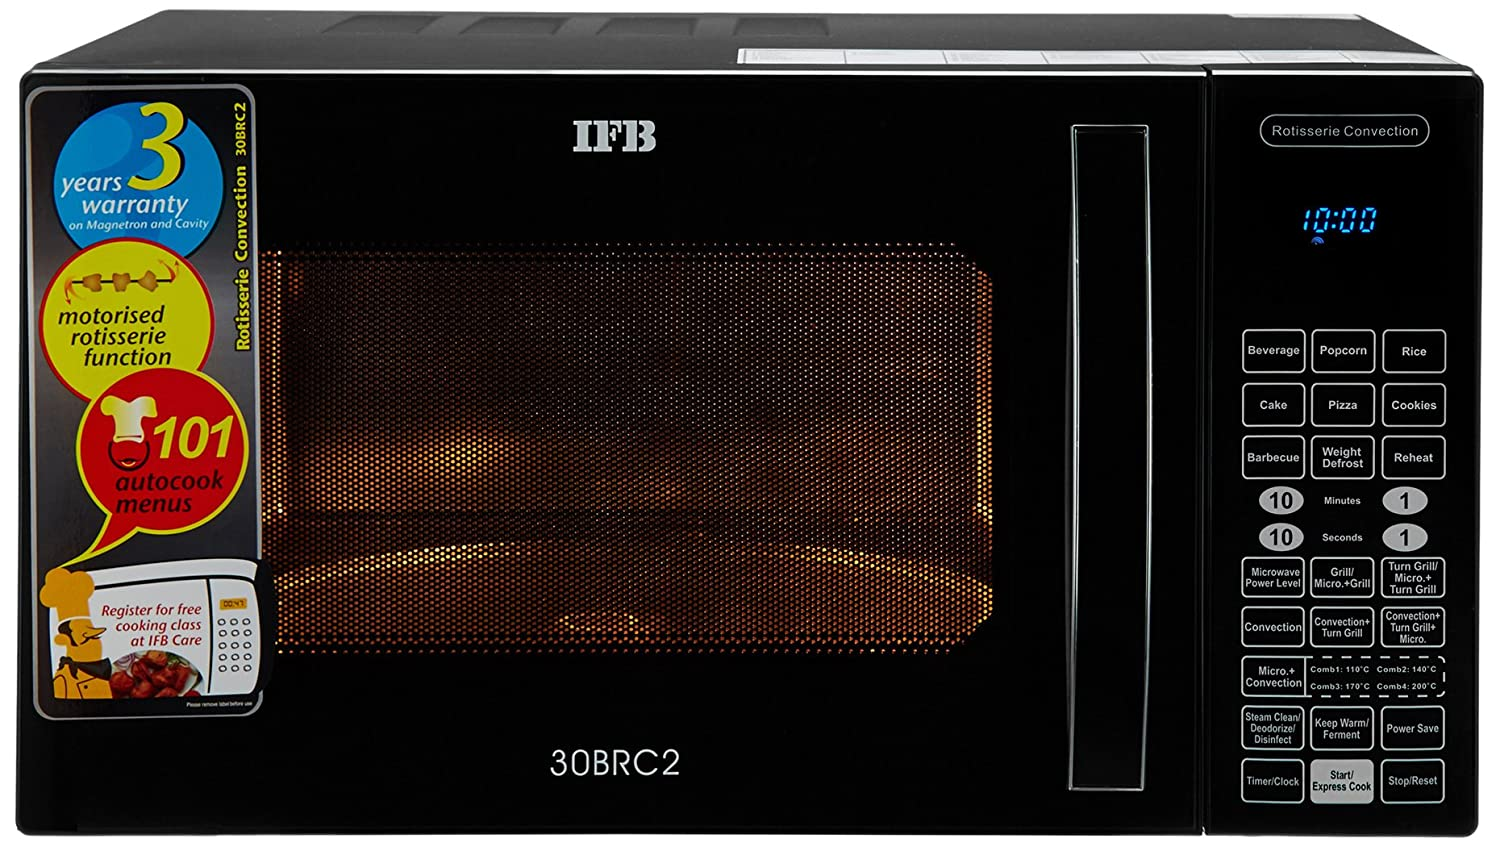 Best Convection Microwave Oven In India 2020 True Indian